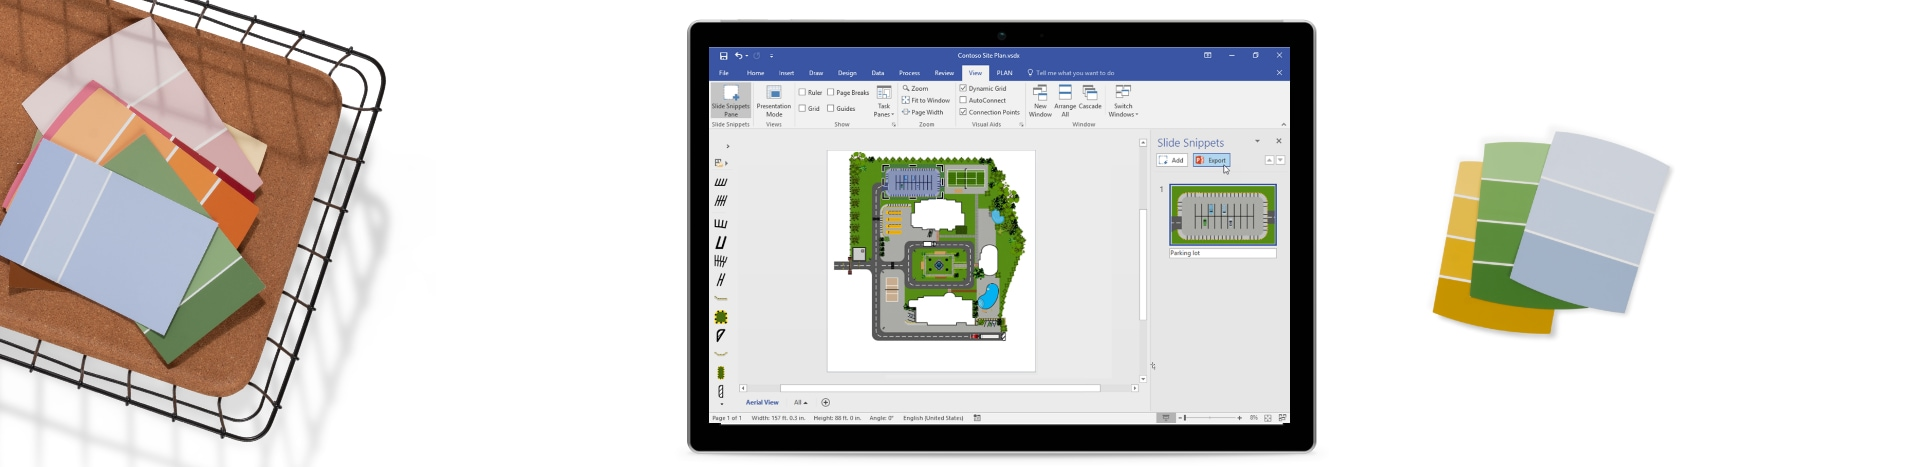 Multiple paint swatches in a basket and a tablet device showing a floorplan in Powerpoint.